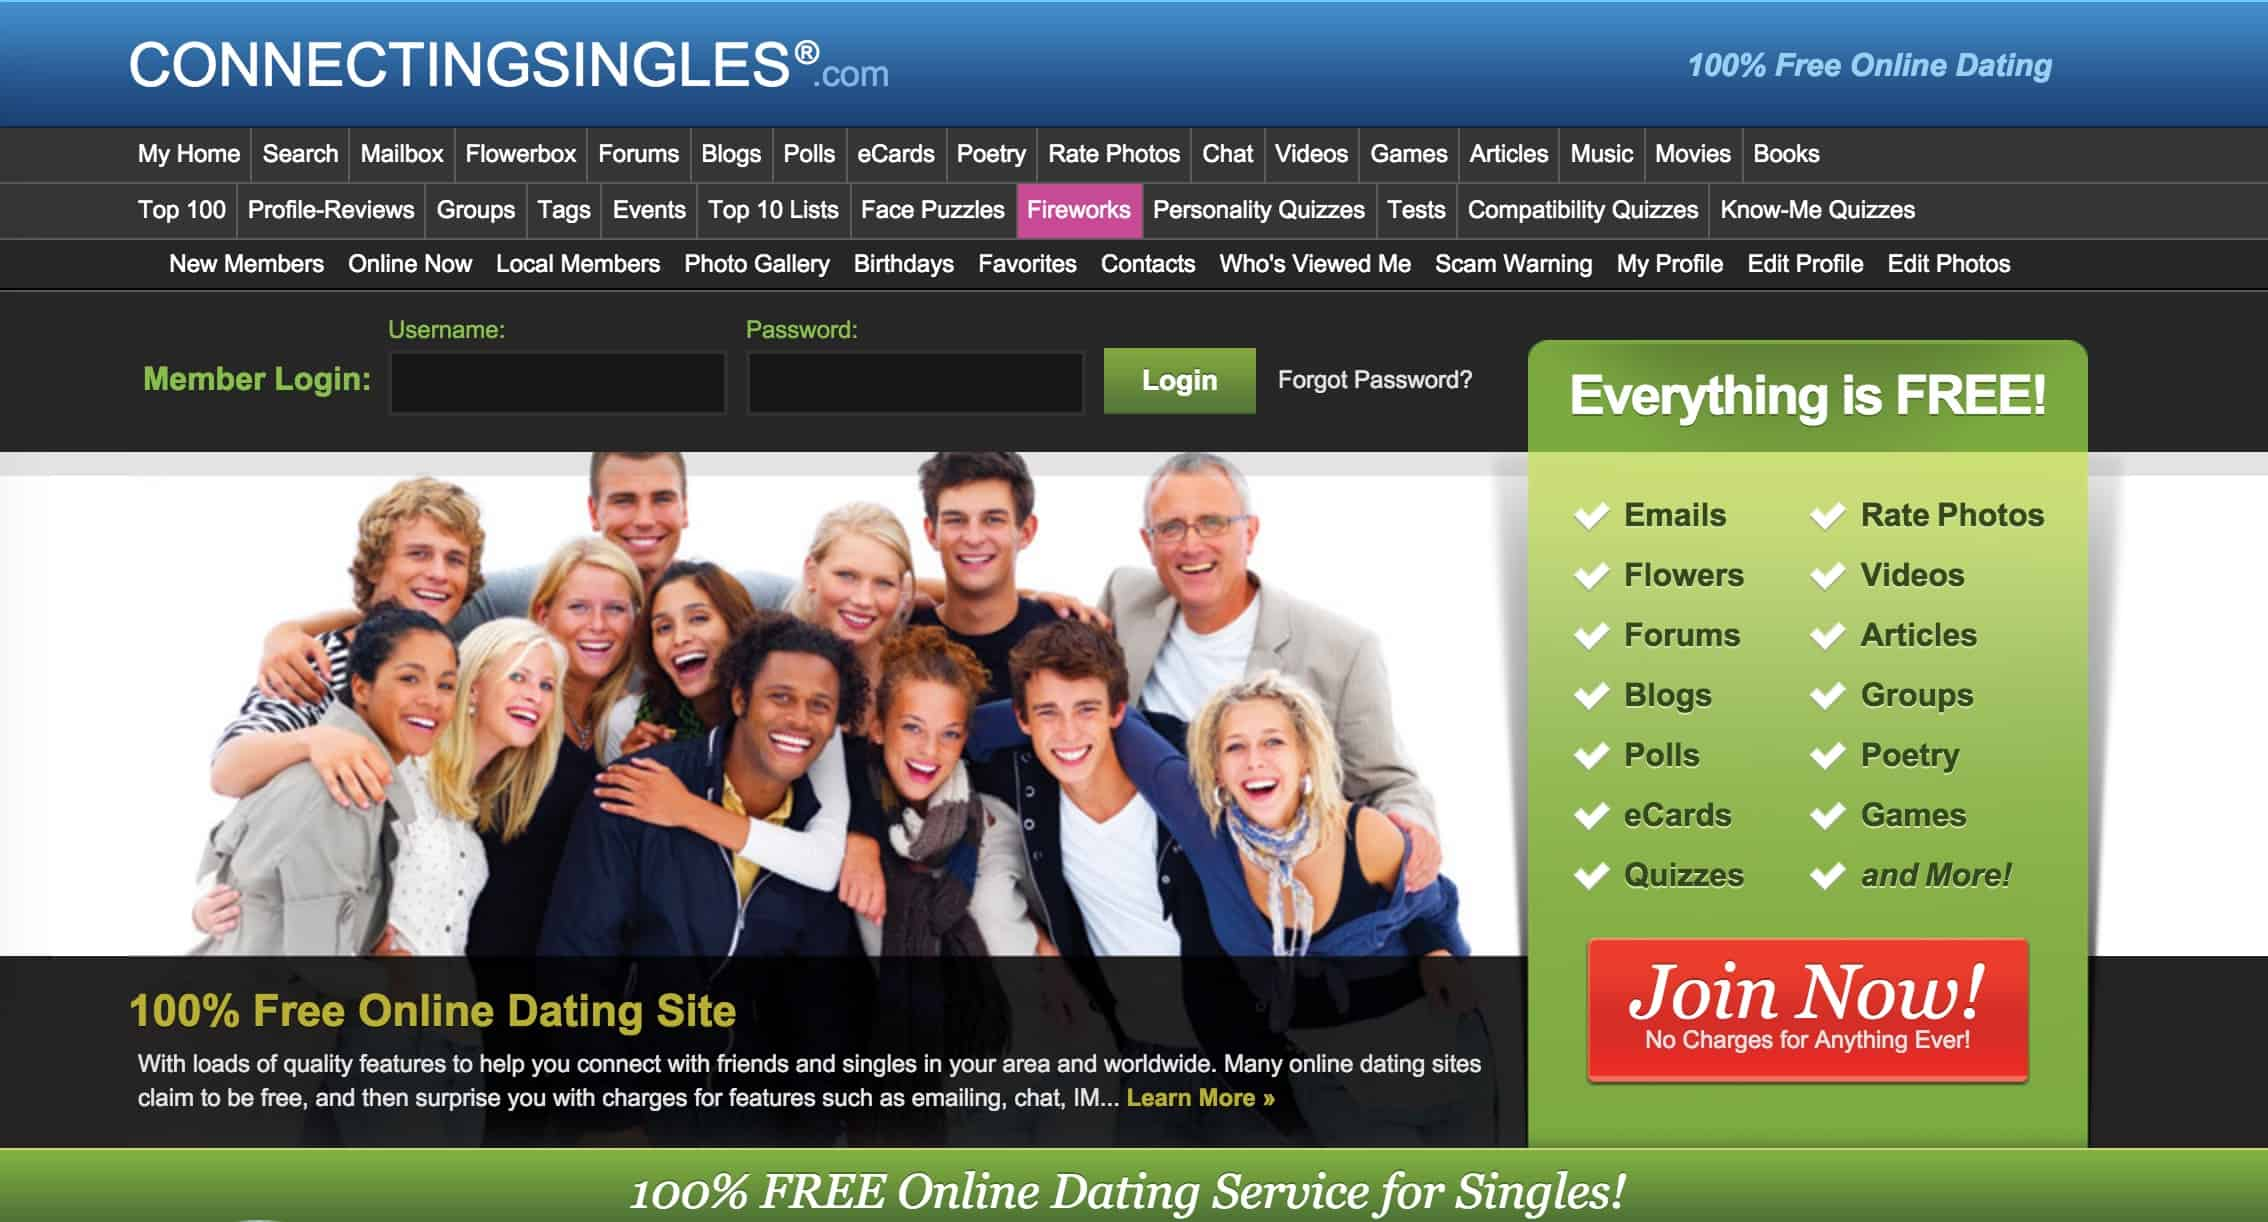 What s Important at Connecting Singles